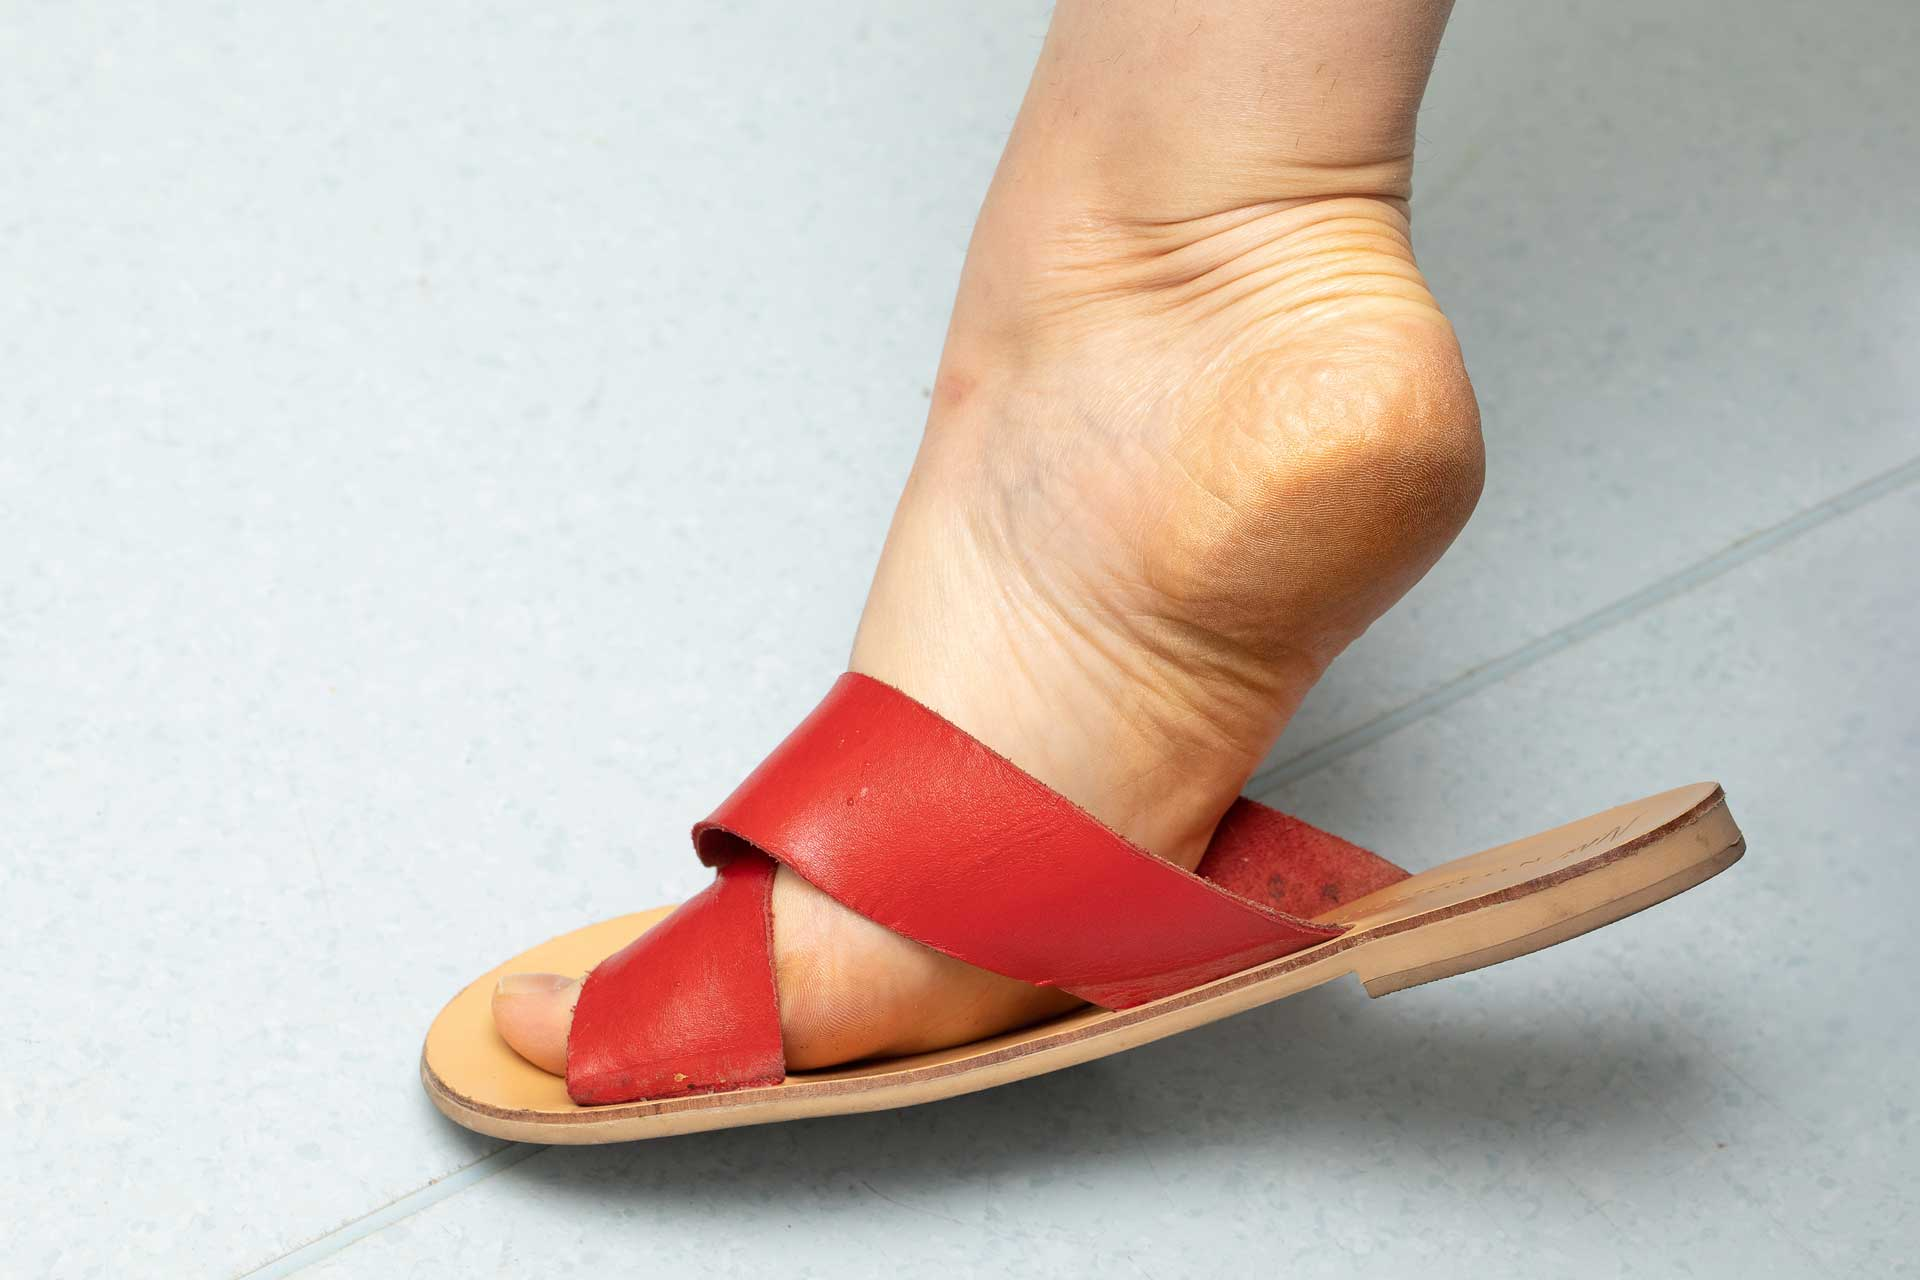 Image of rough skin on heel with red sandals